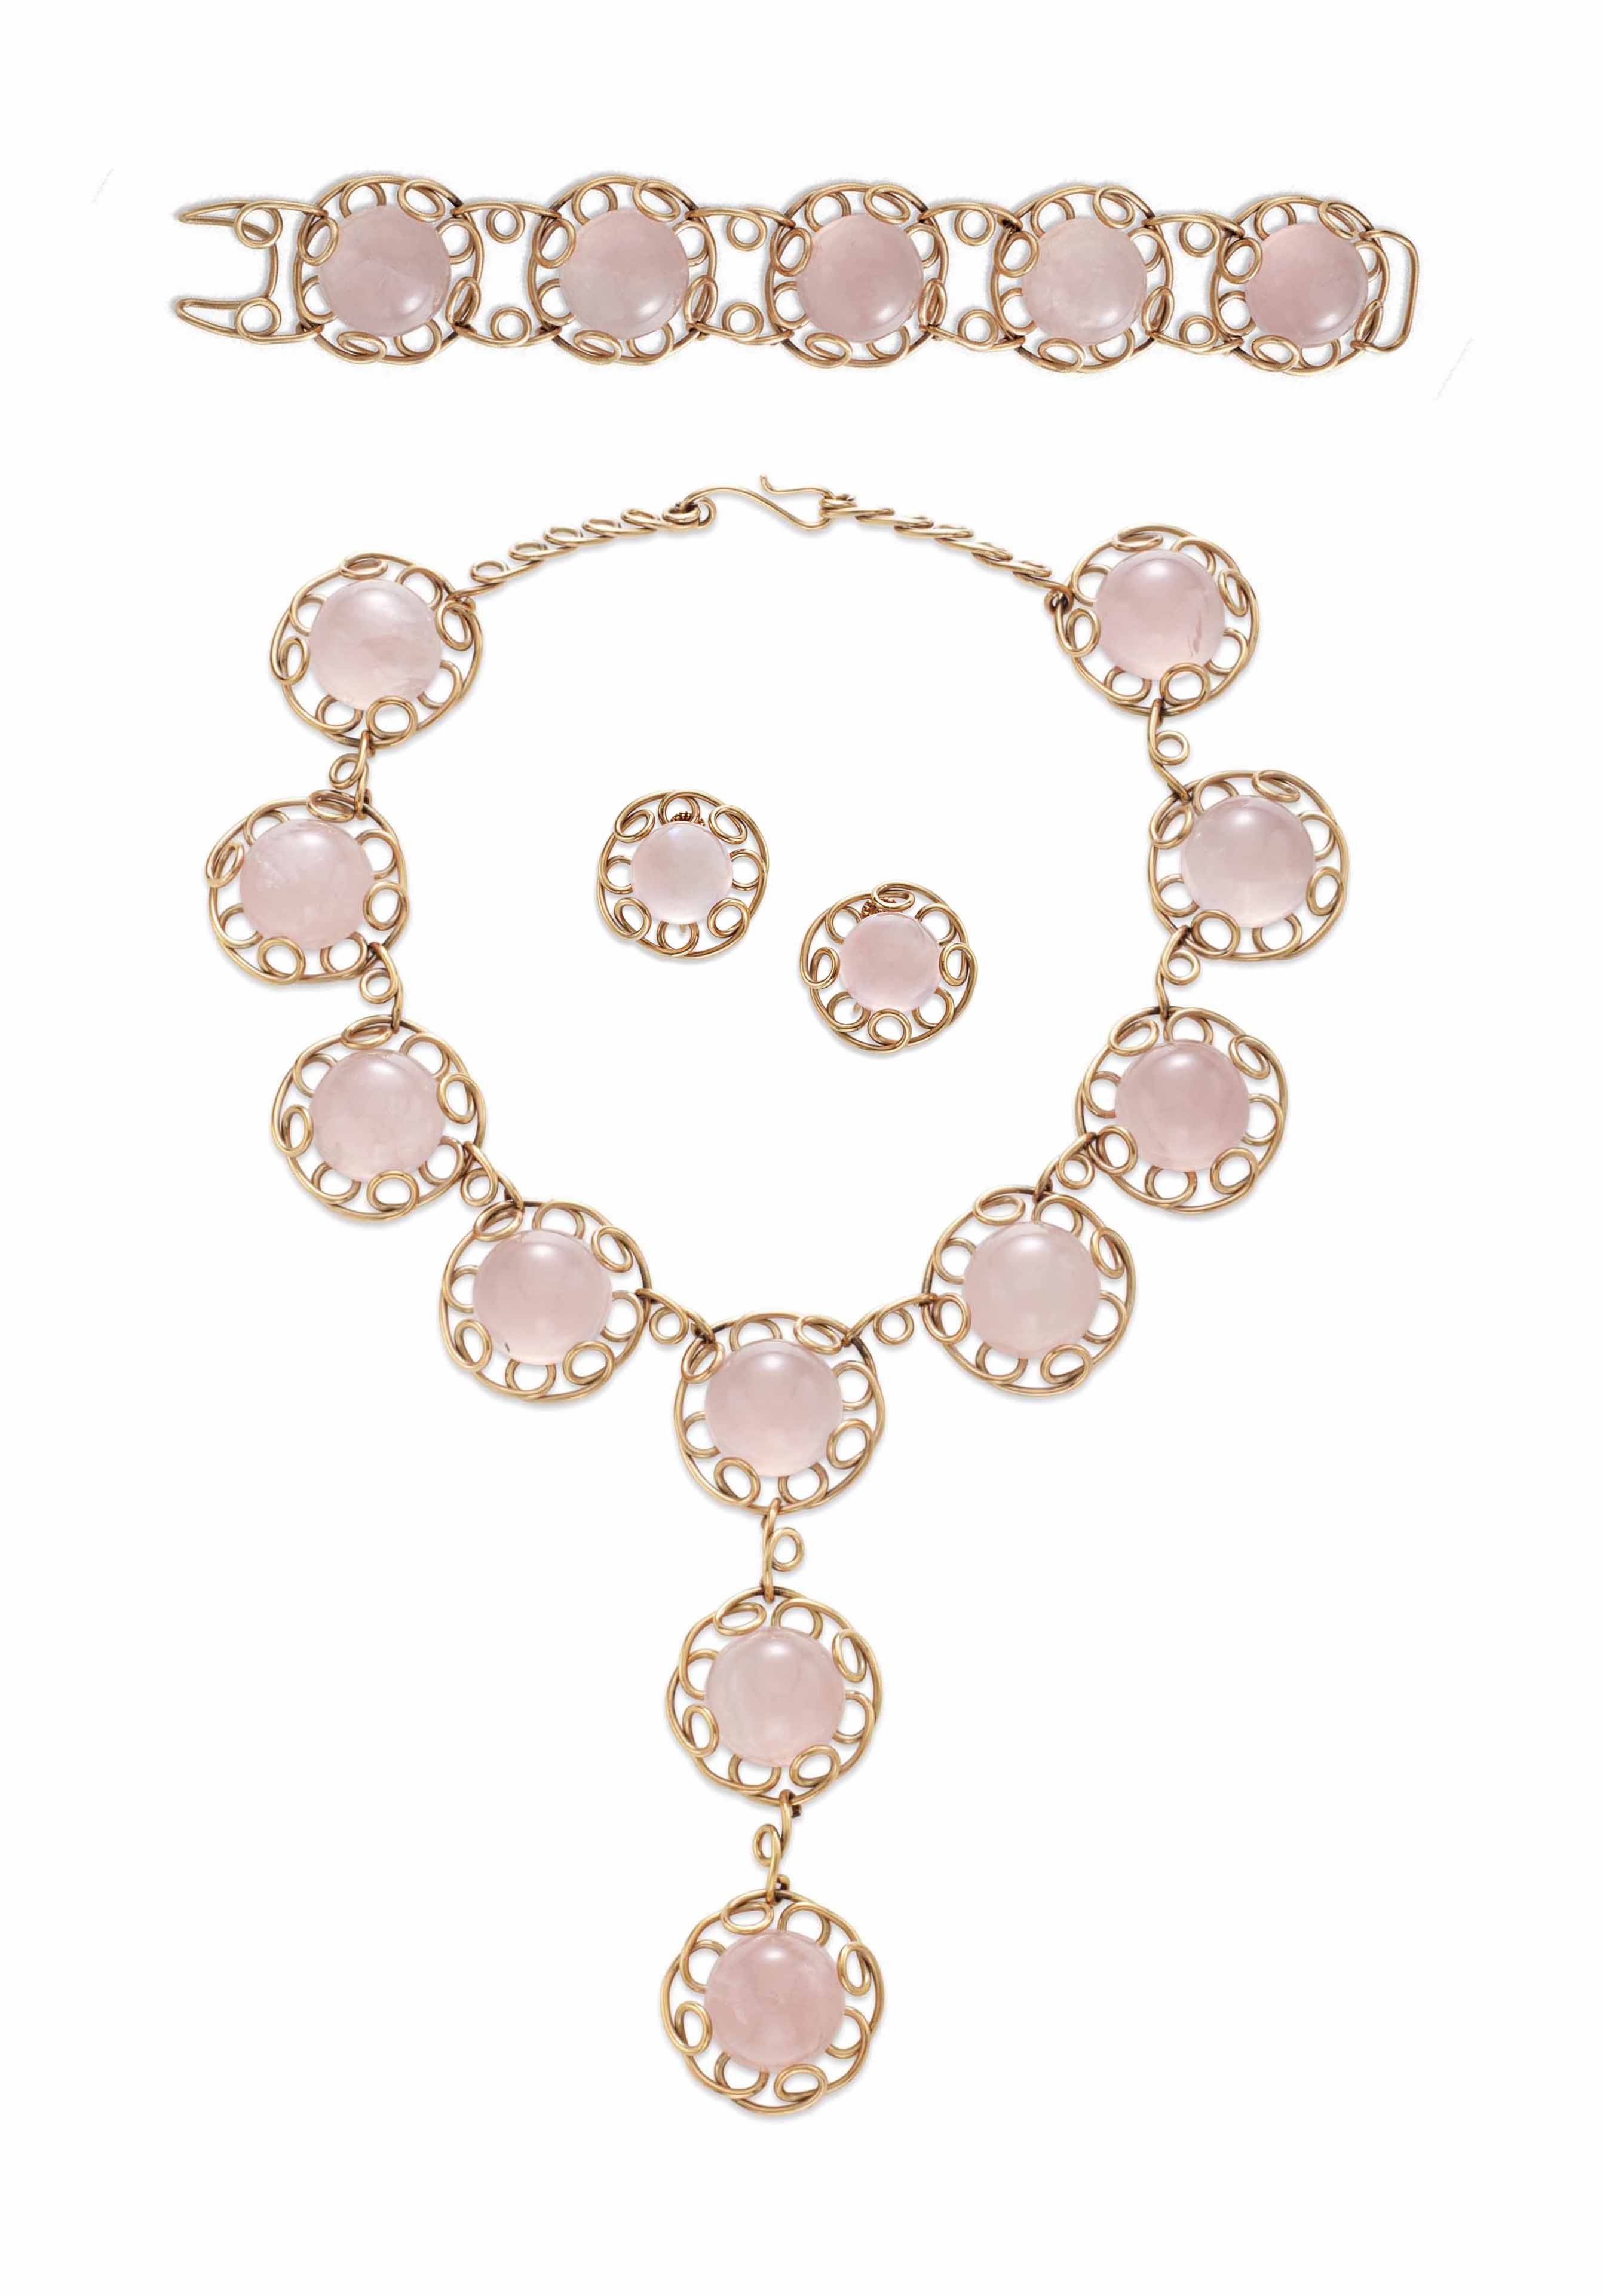 A SUITE OF ROSE QUARTZ AND GOL